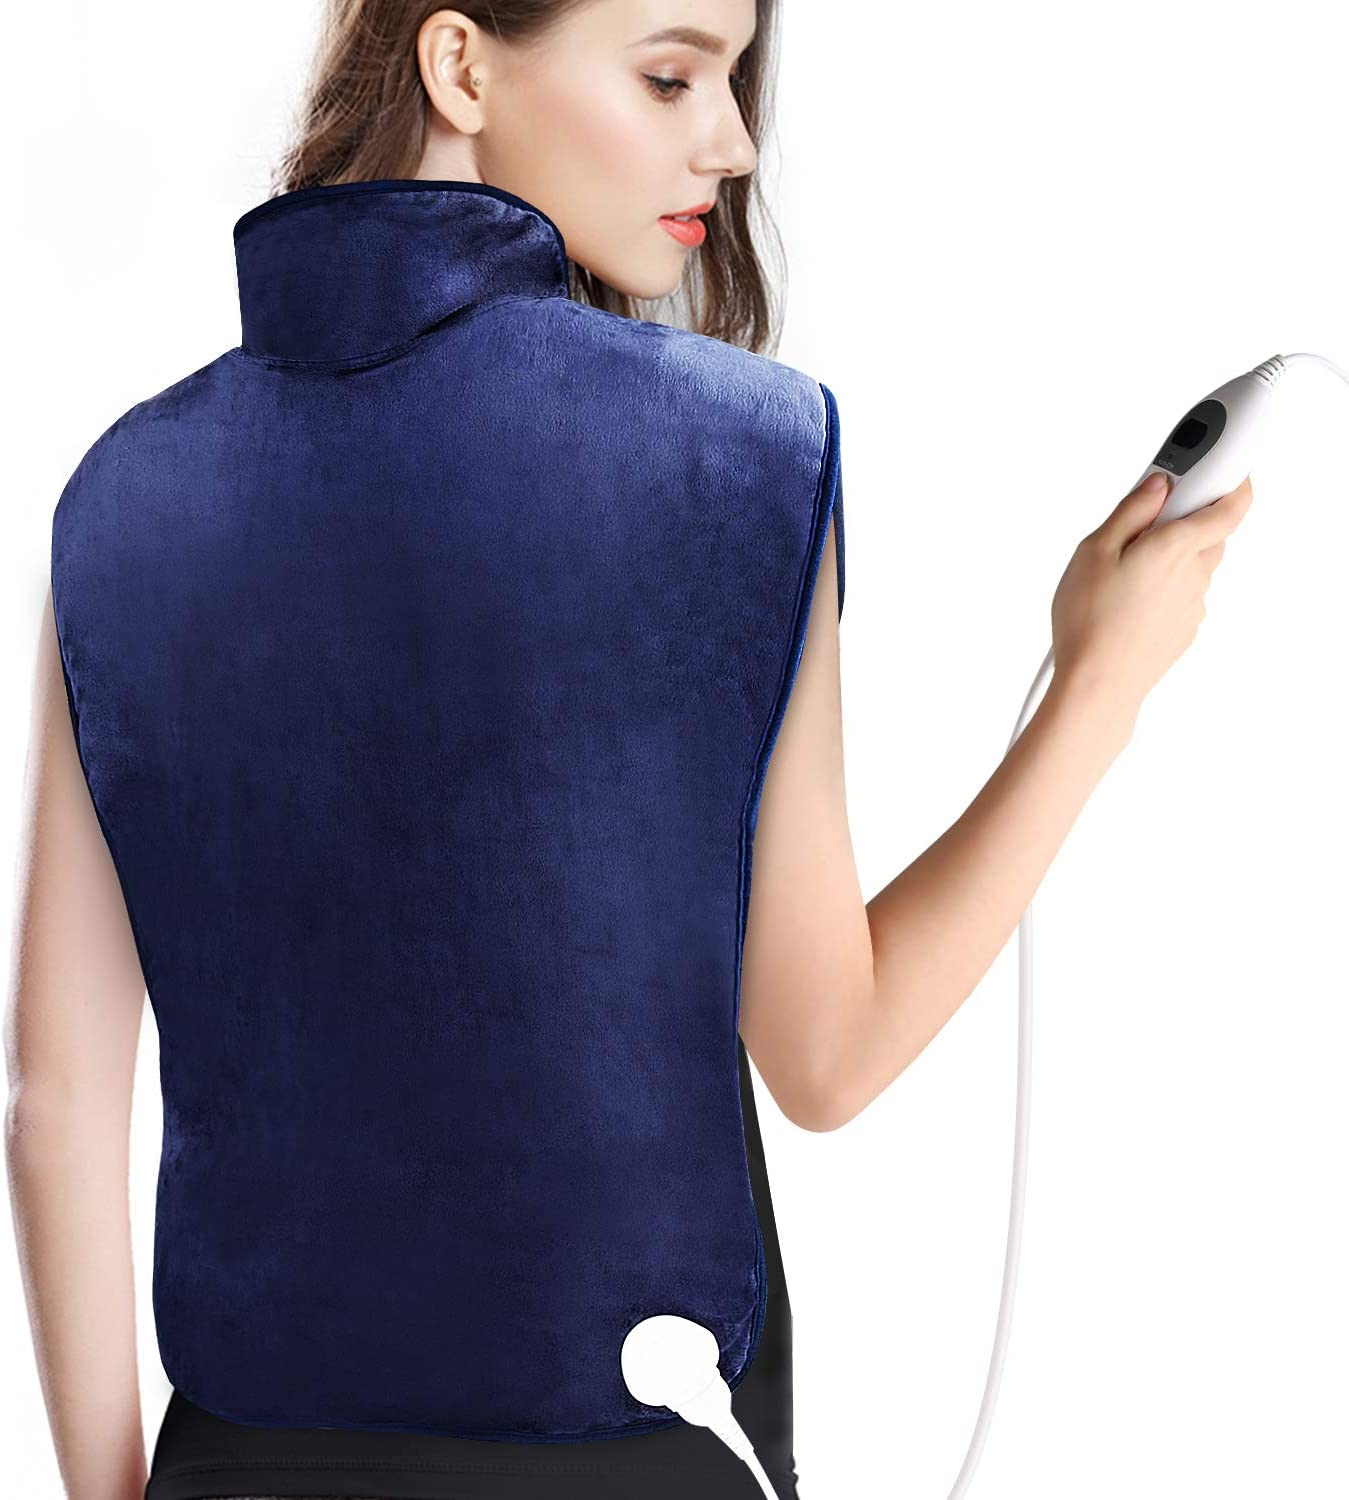 """Large Heating Pad, XXL Electric Heating Pad for Back Pain and Cramps Relief, Soft Wrap Heating Pads with Auto Shut Off, 6 Temperature Settings, ETL Certified, 25 x 35"""""""